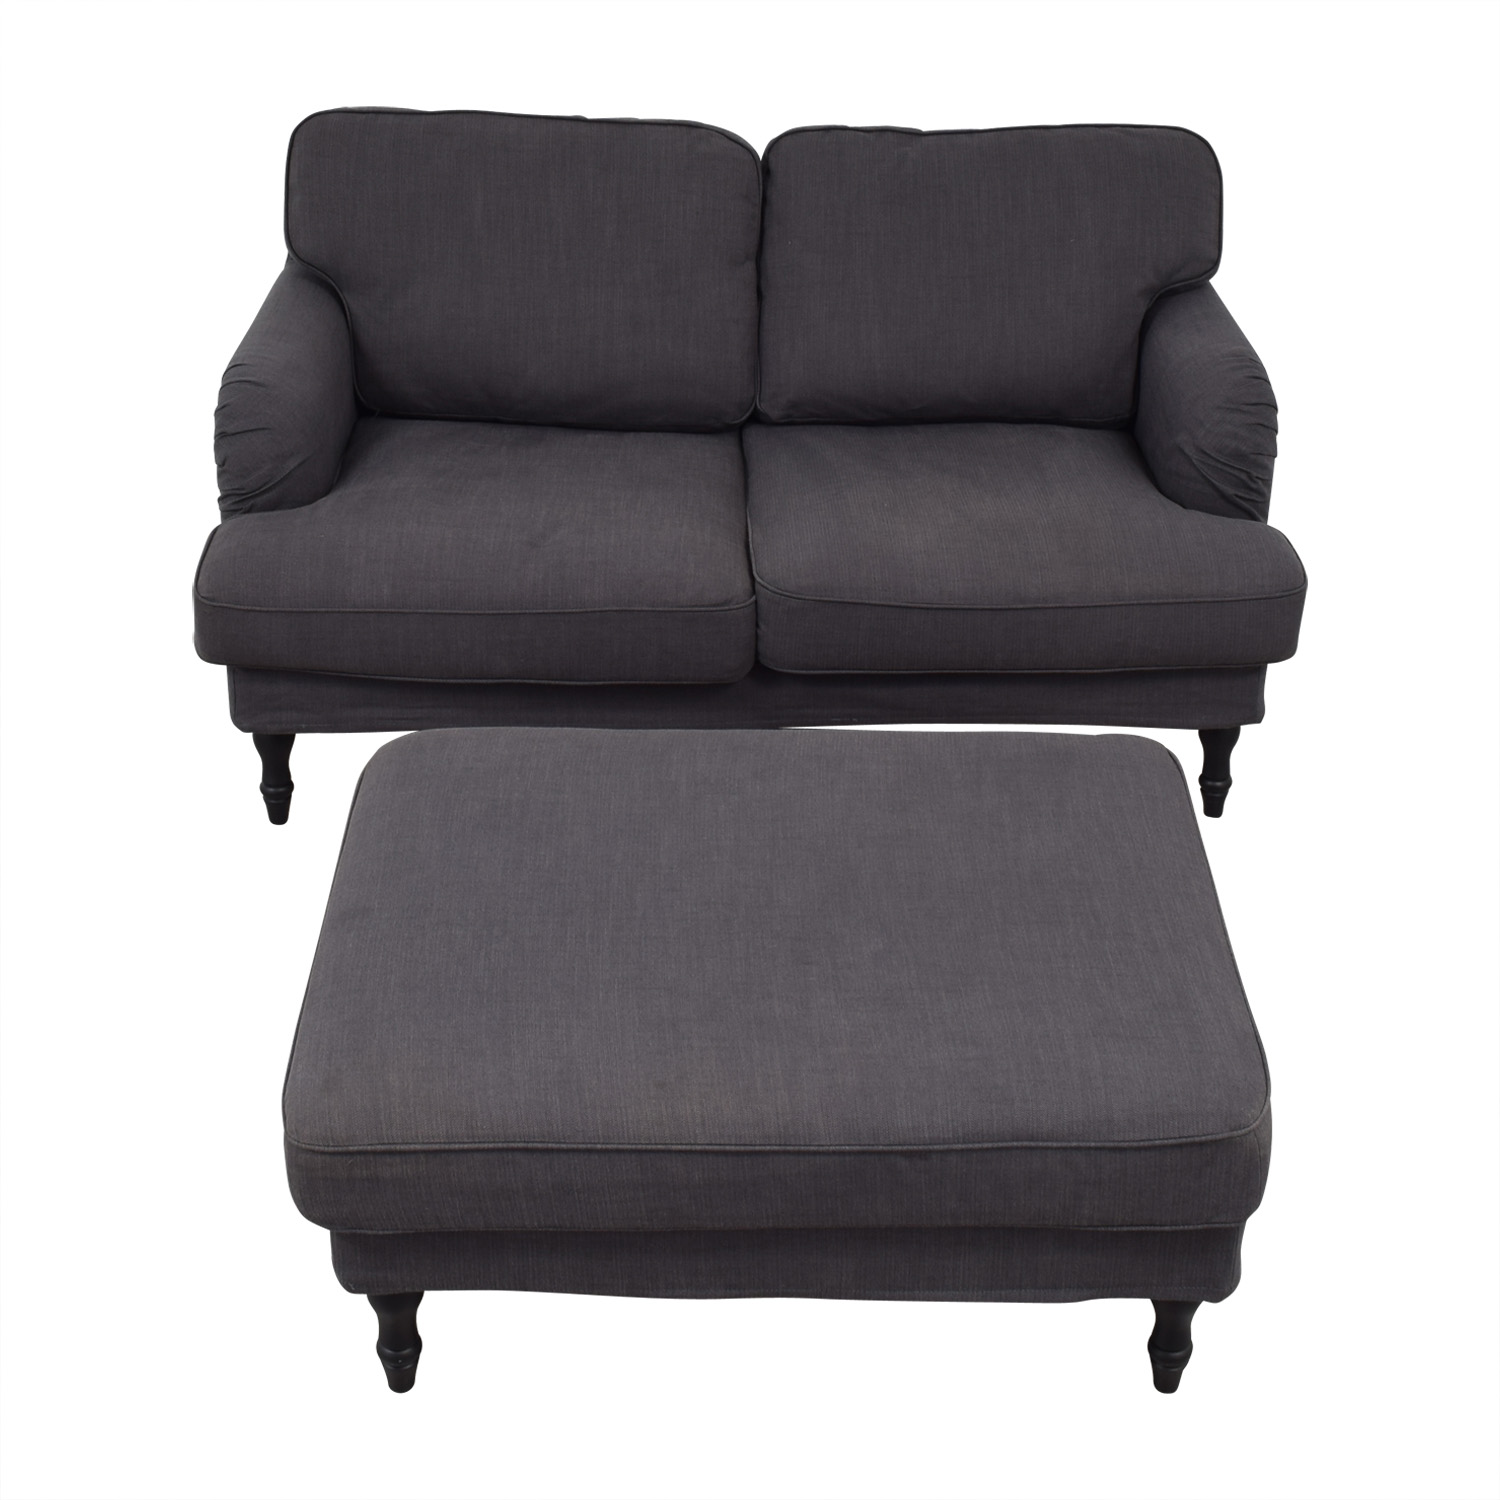 IKEA IKEA Grey Two-Cushion Loveseat and Ottoman on sale